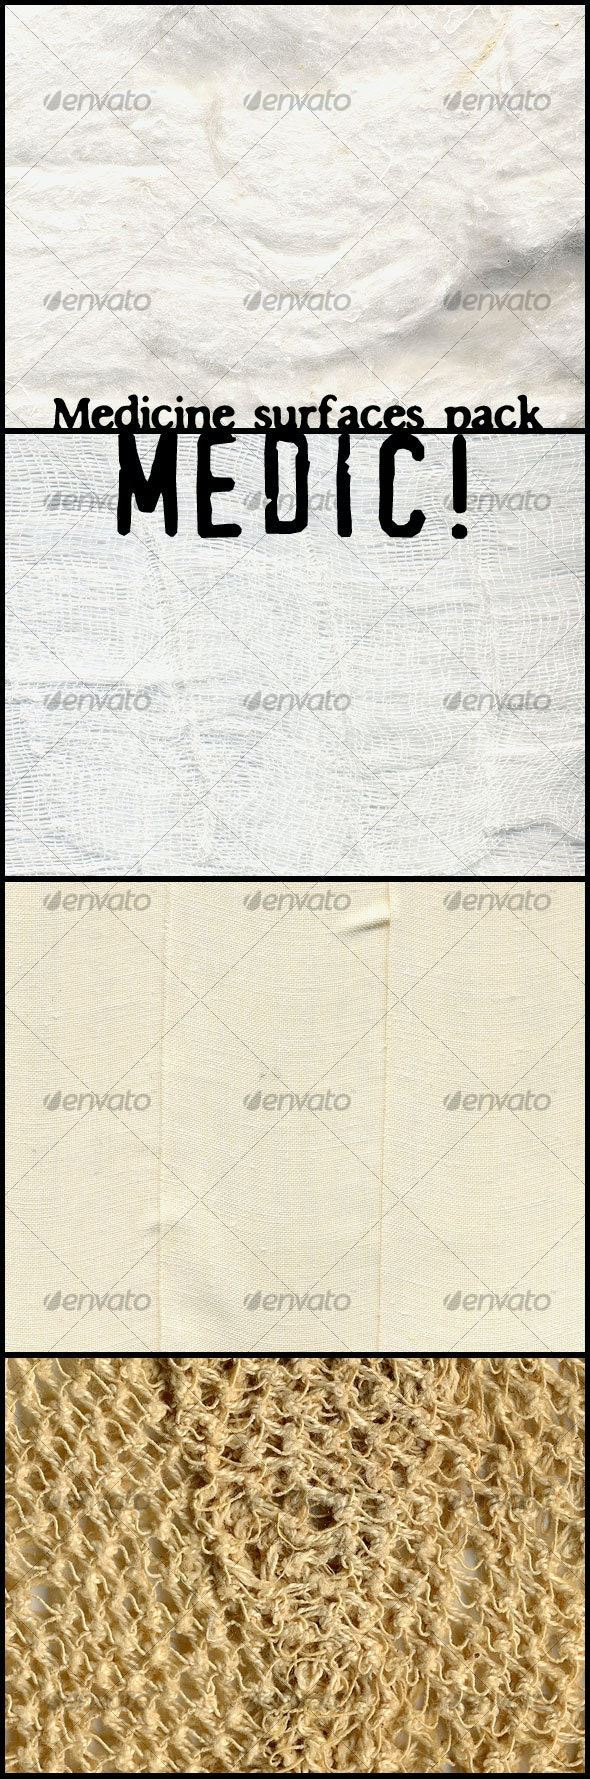 Medic! Medicine surfaces pack - Fabric Textures